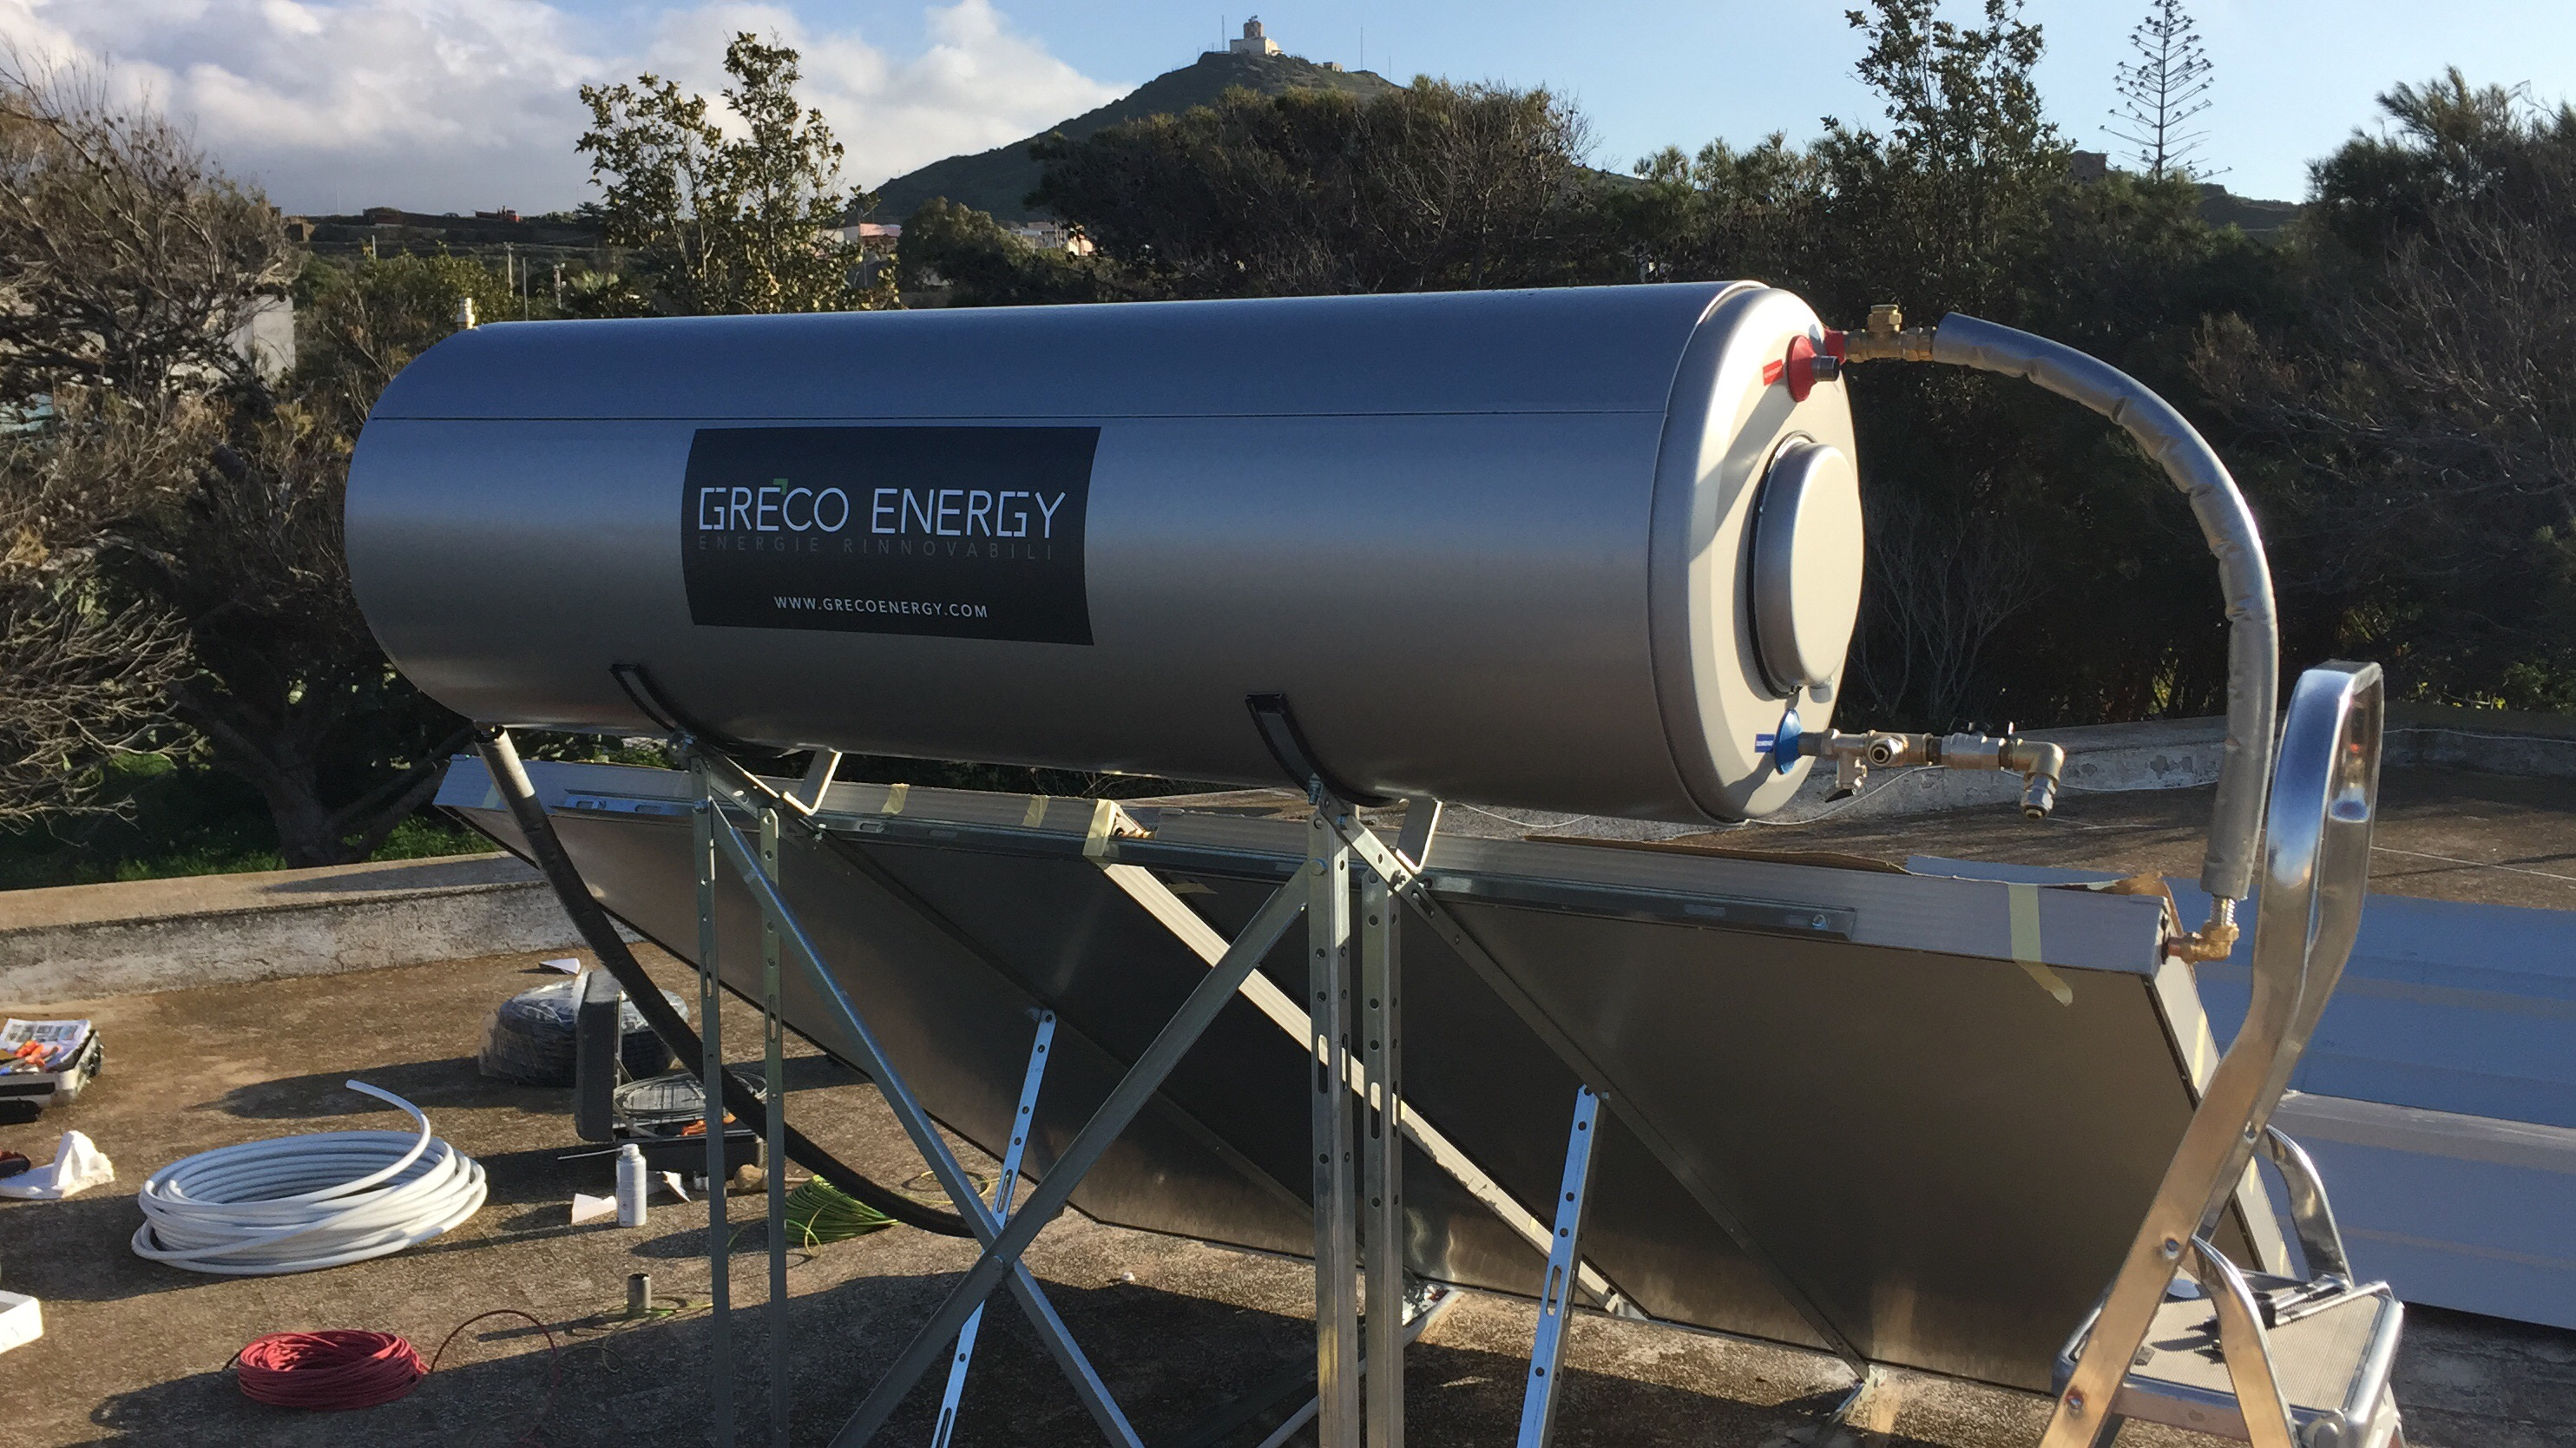 solare termico greco energy bagheria